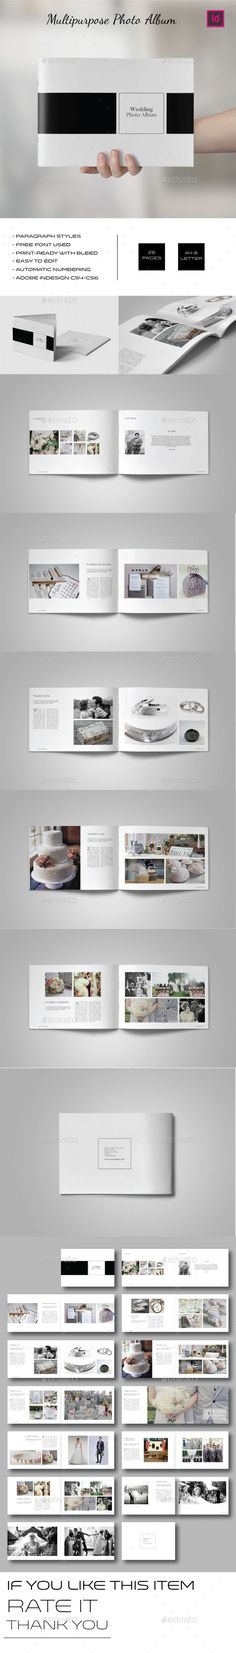 Multipurpose Landscape Photo Album Template InDesign INDD. Download here: http://graphicriver.net/item/multipurpose-landscape-photo-album/15328290?ref=ksioks